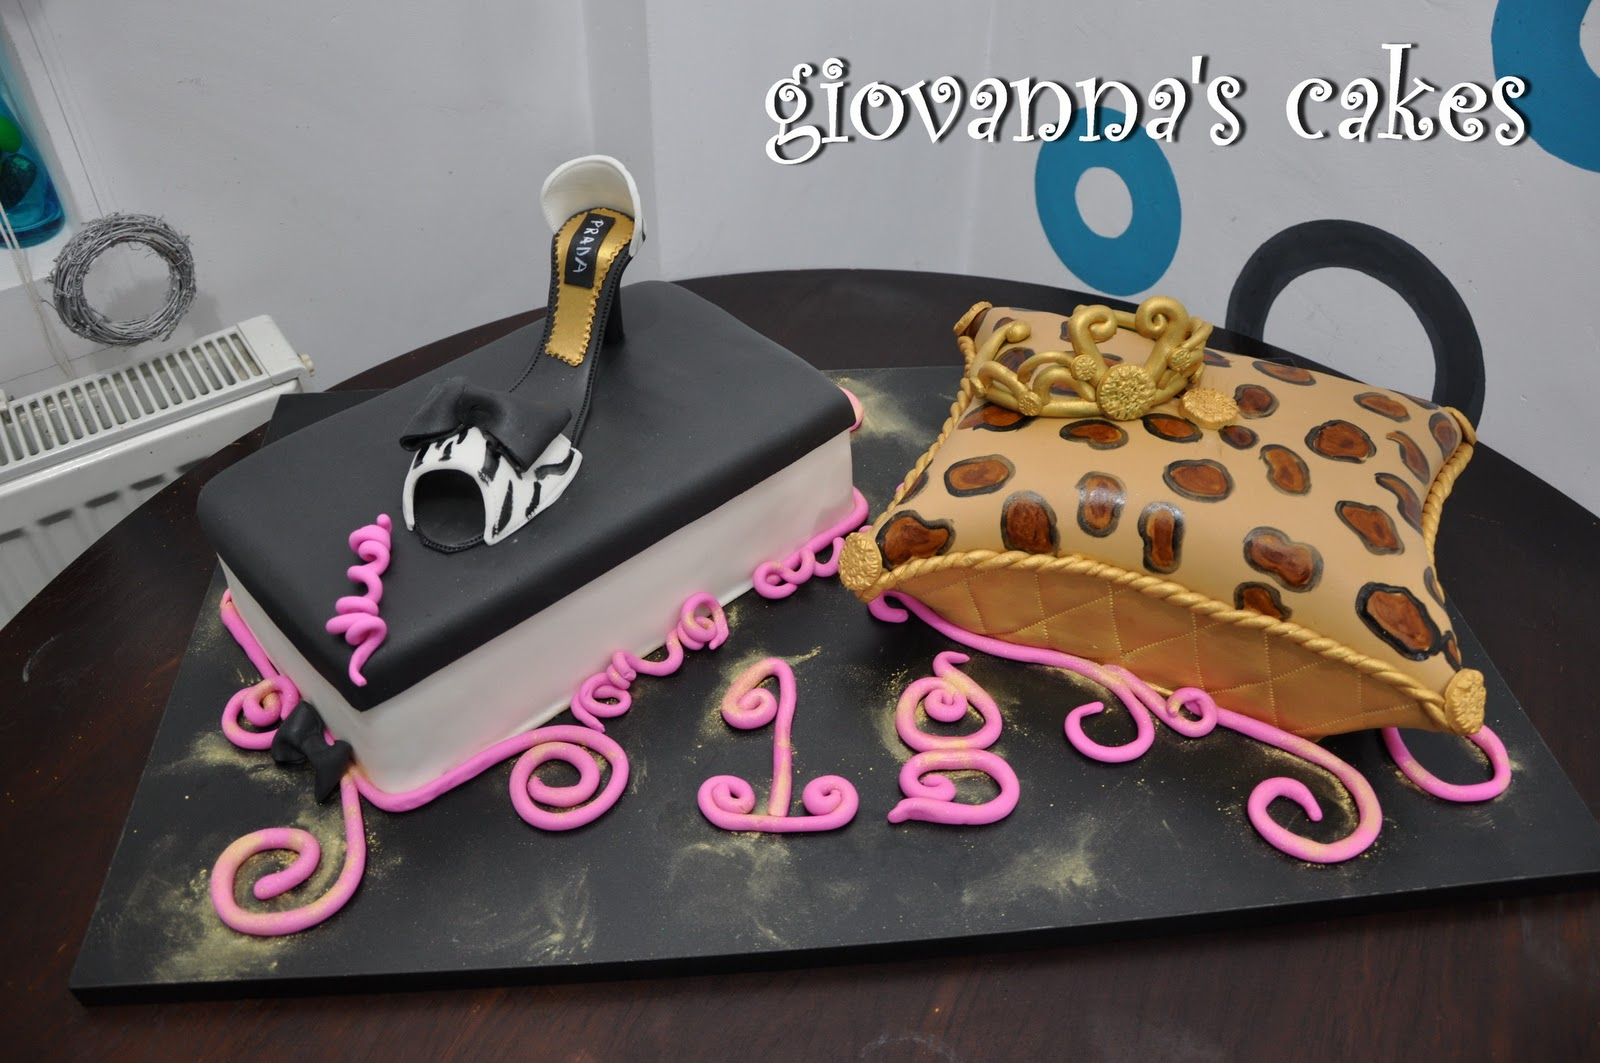 Giovannas Cakes Fashionista 18 Year Old Princess Birthday Cake